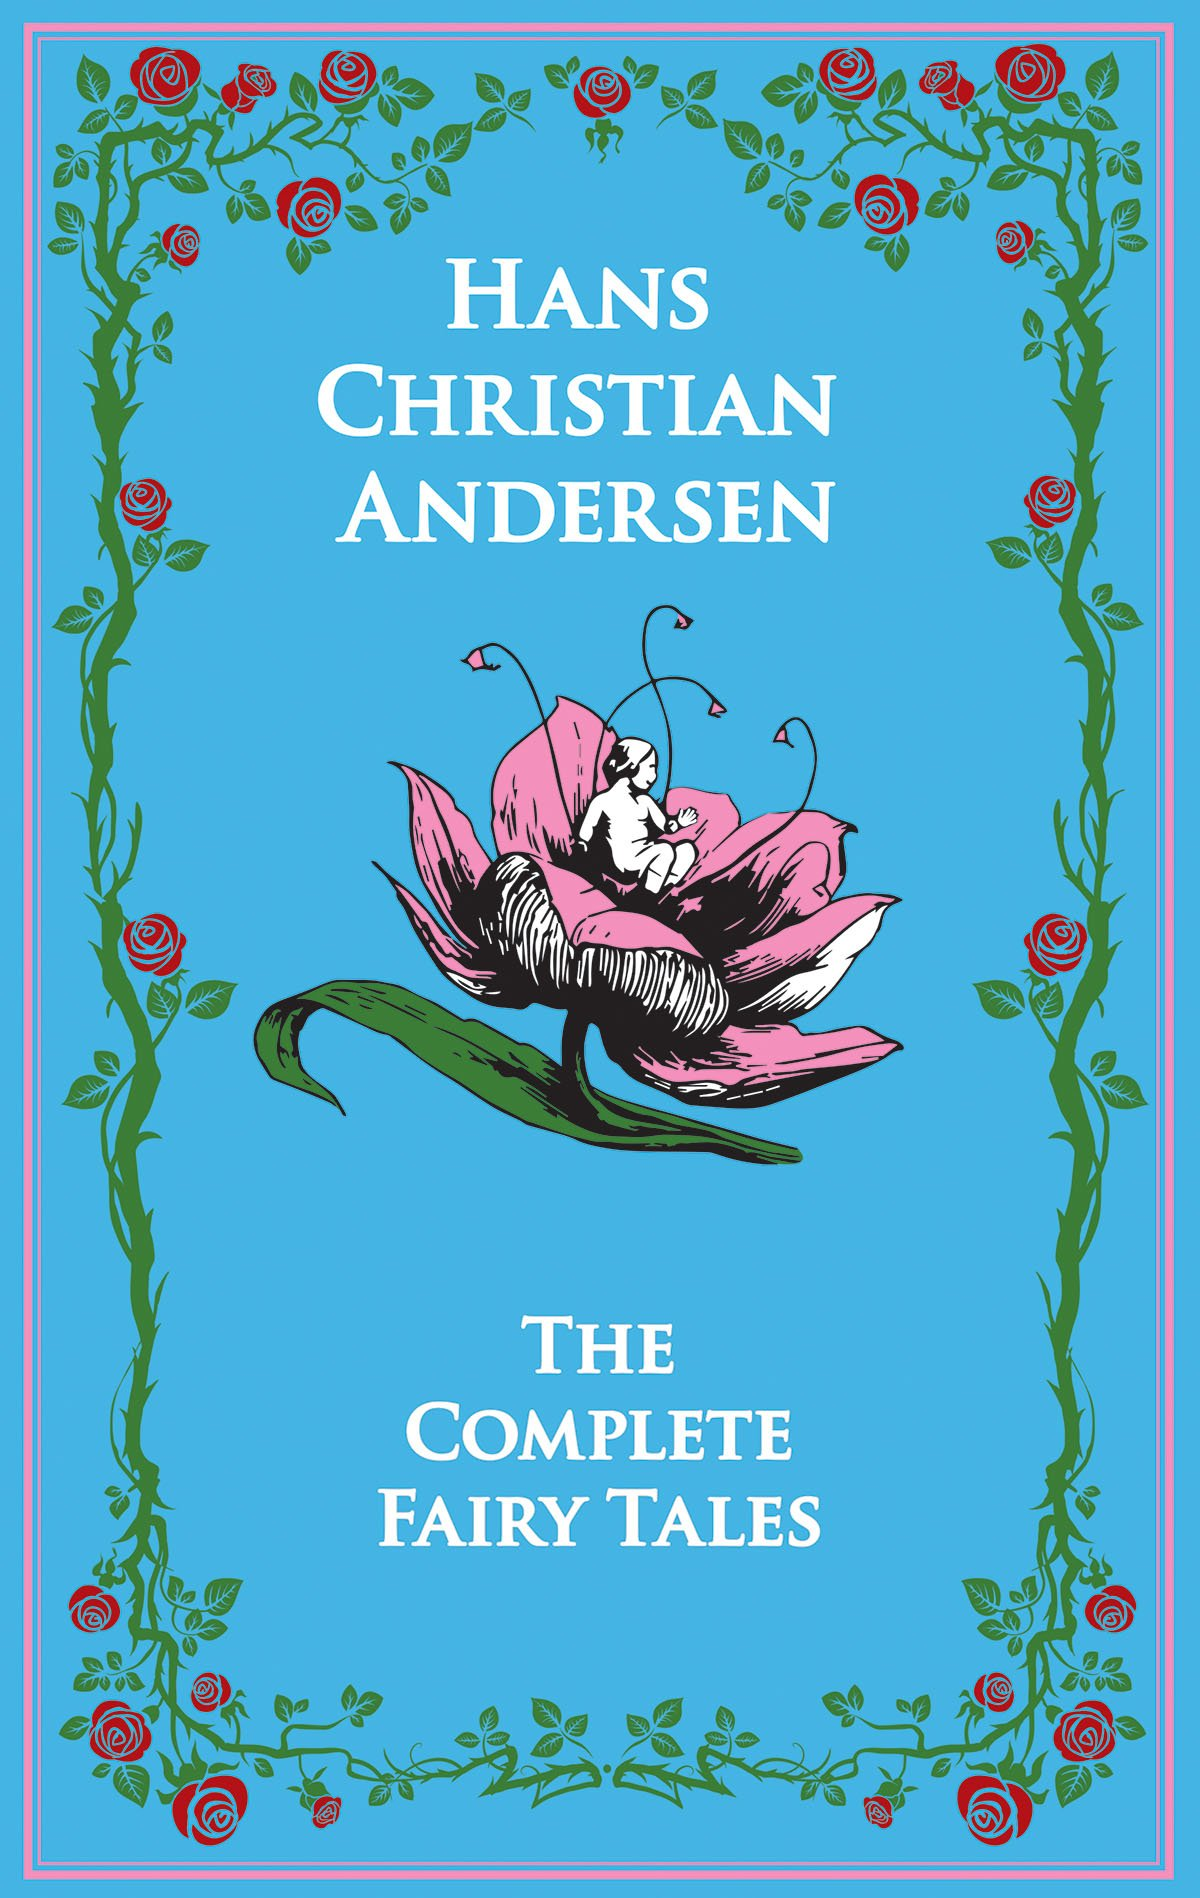 Hans Christian Andersen's Complete Fairy Tales (Leather-bound Classics) by Canterbury Classics (Image #2)